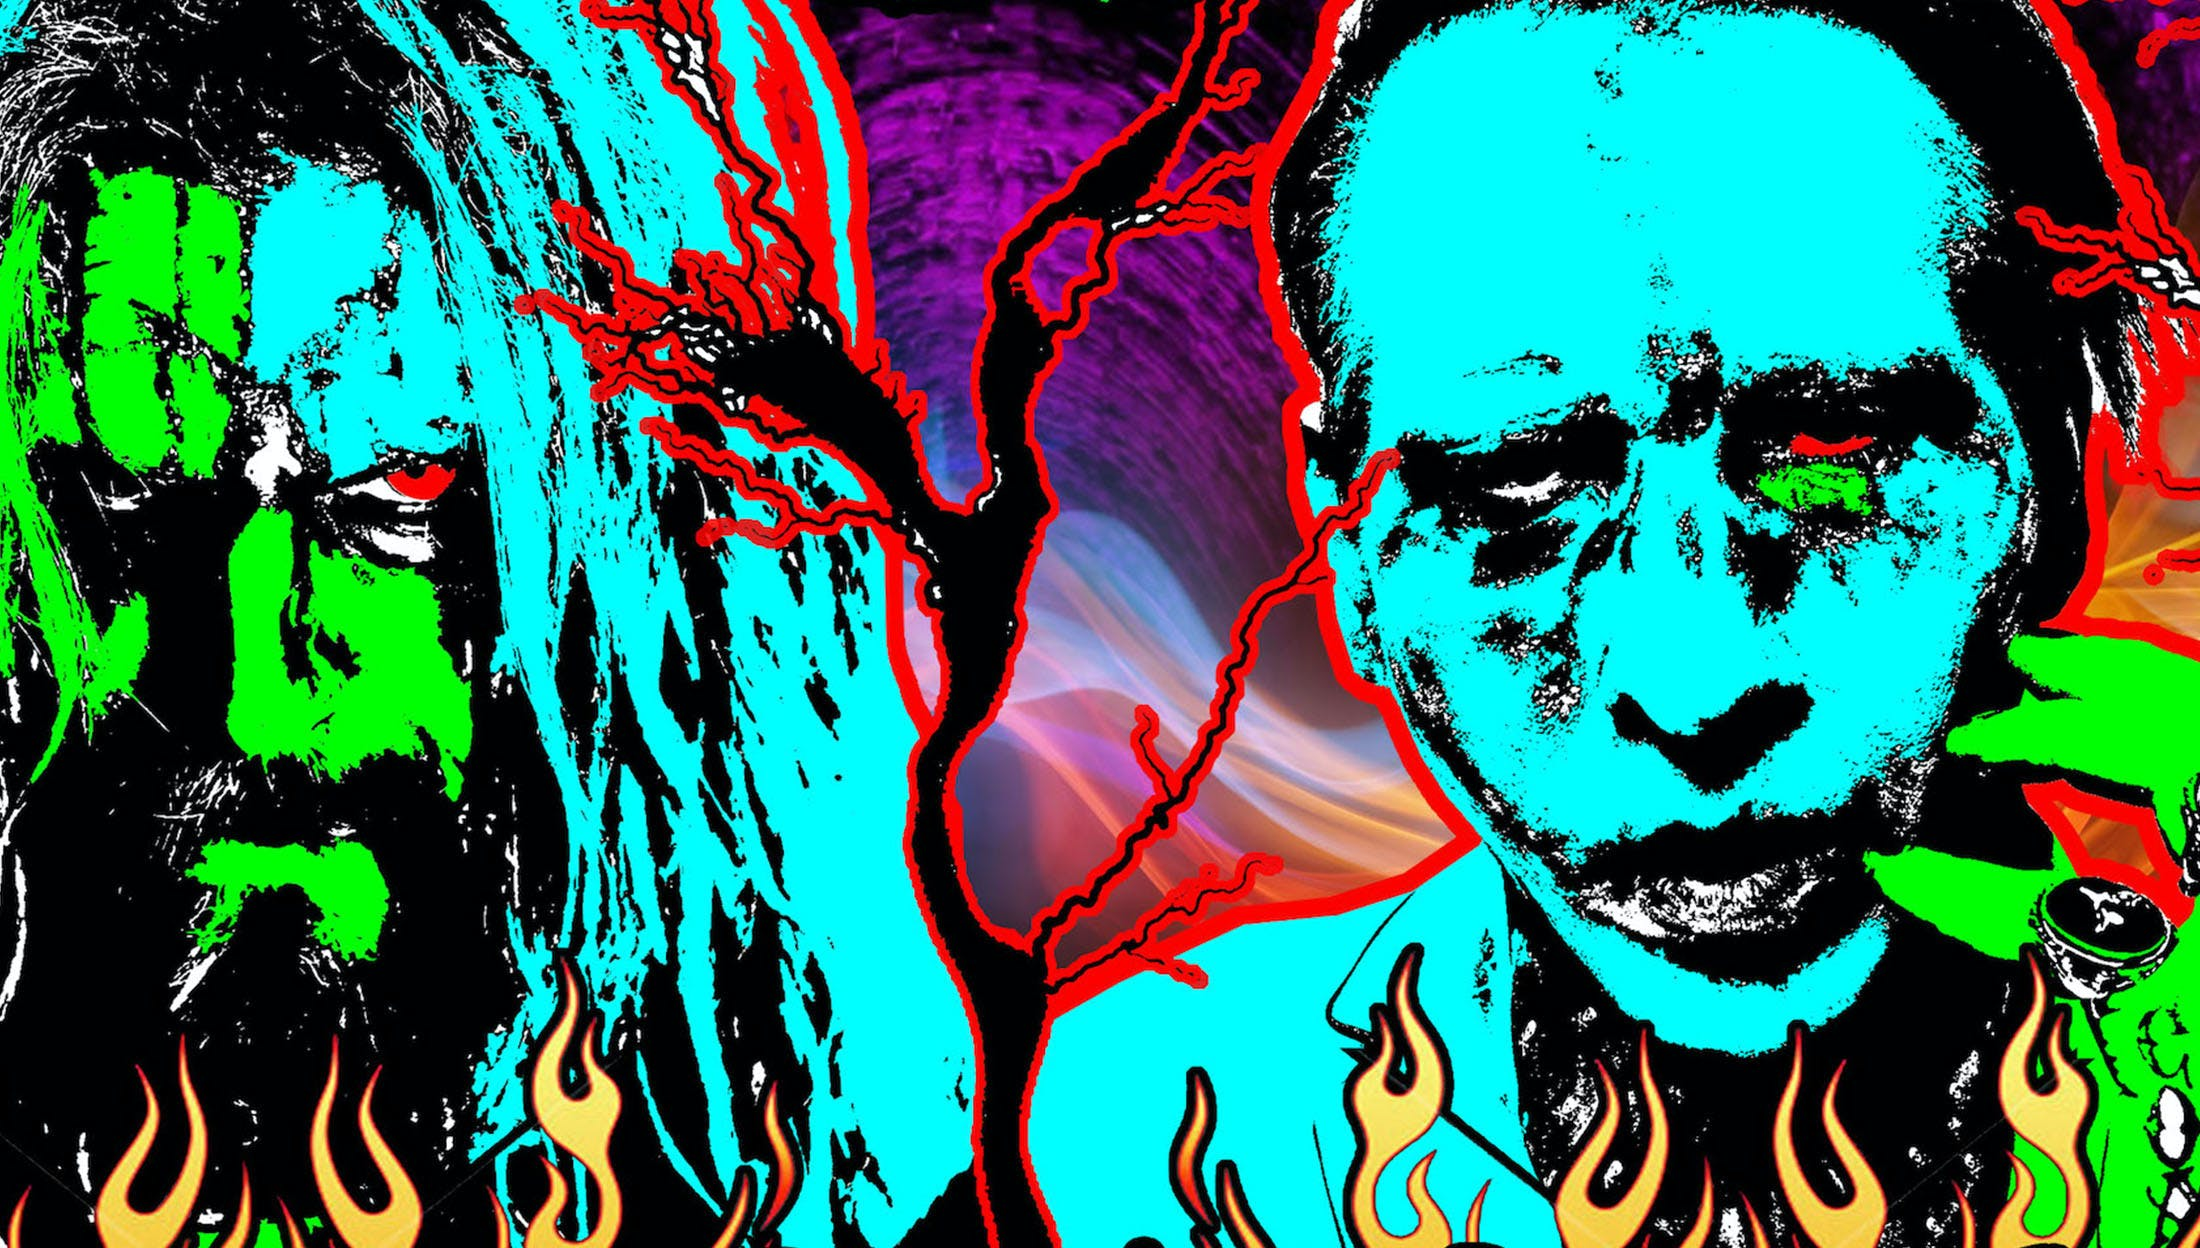 Rob Zombie And Marilyn Manson Want You To Pick Their Next Duet